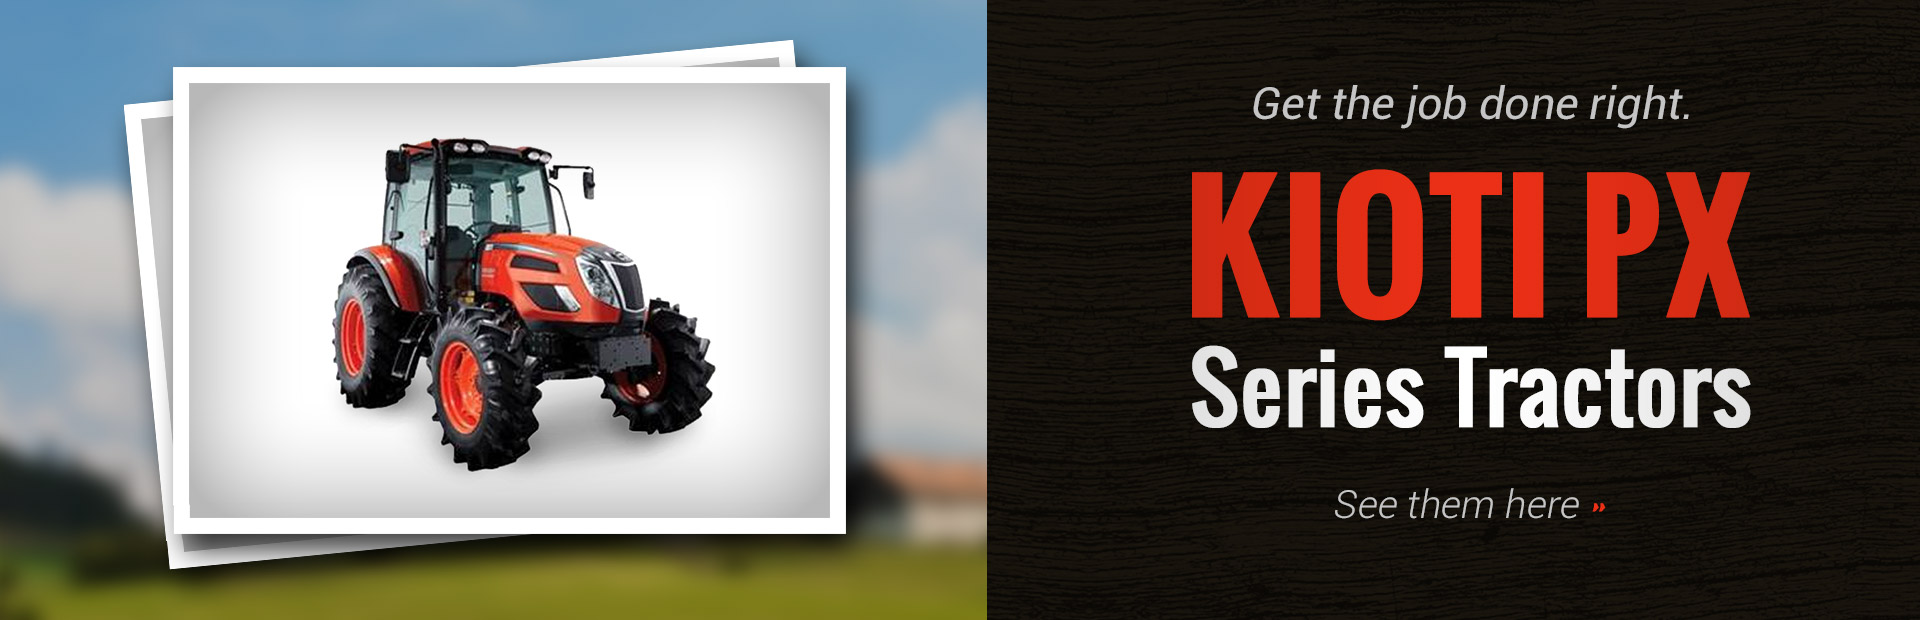 KIOTI PX Series Tractors: Click here to see the models.